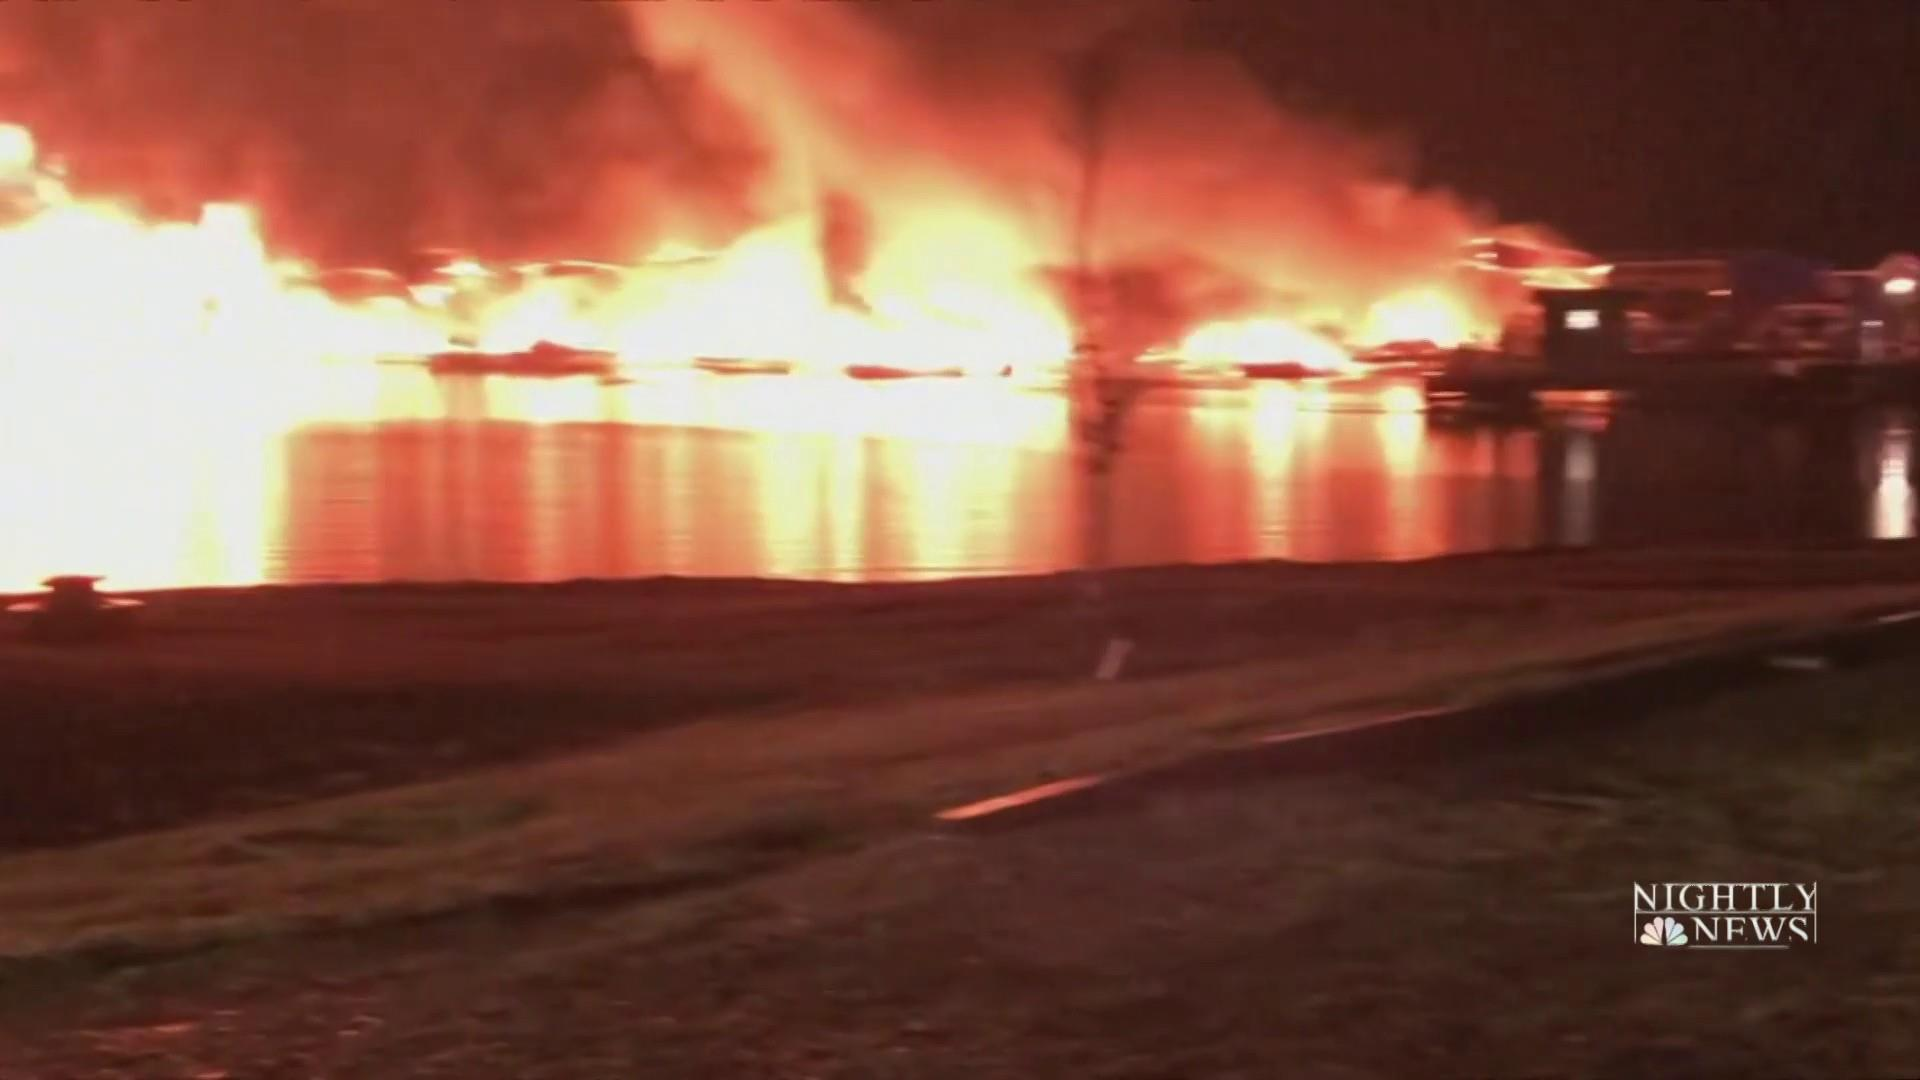 At least eight dead in Alabama marina fire that destroyed 35 boats